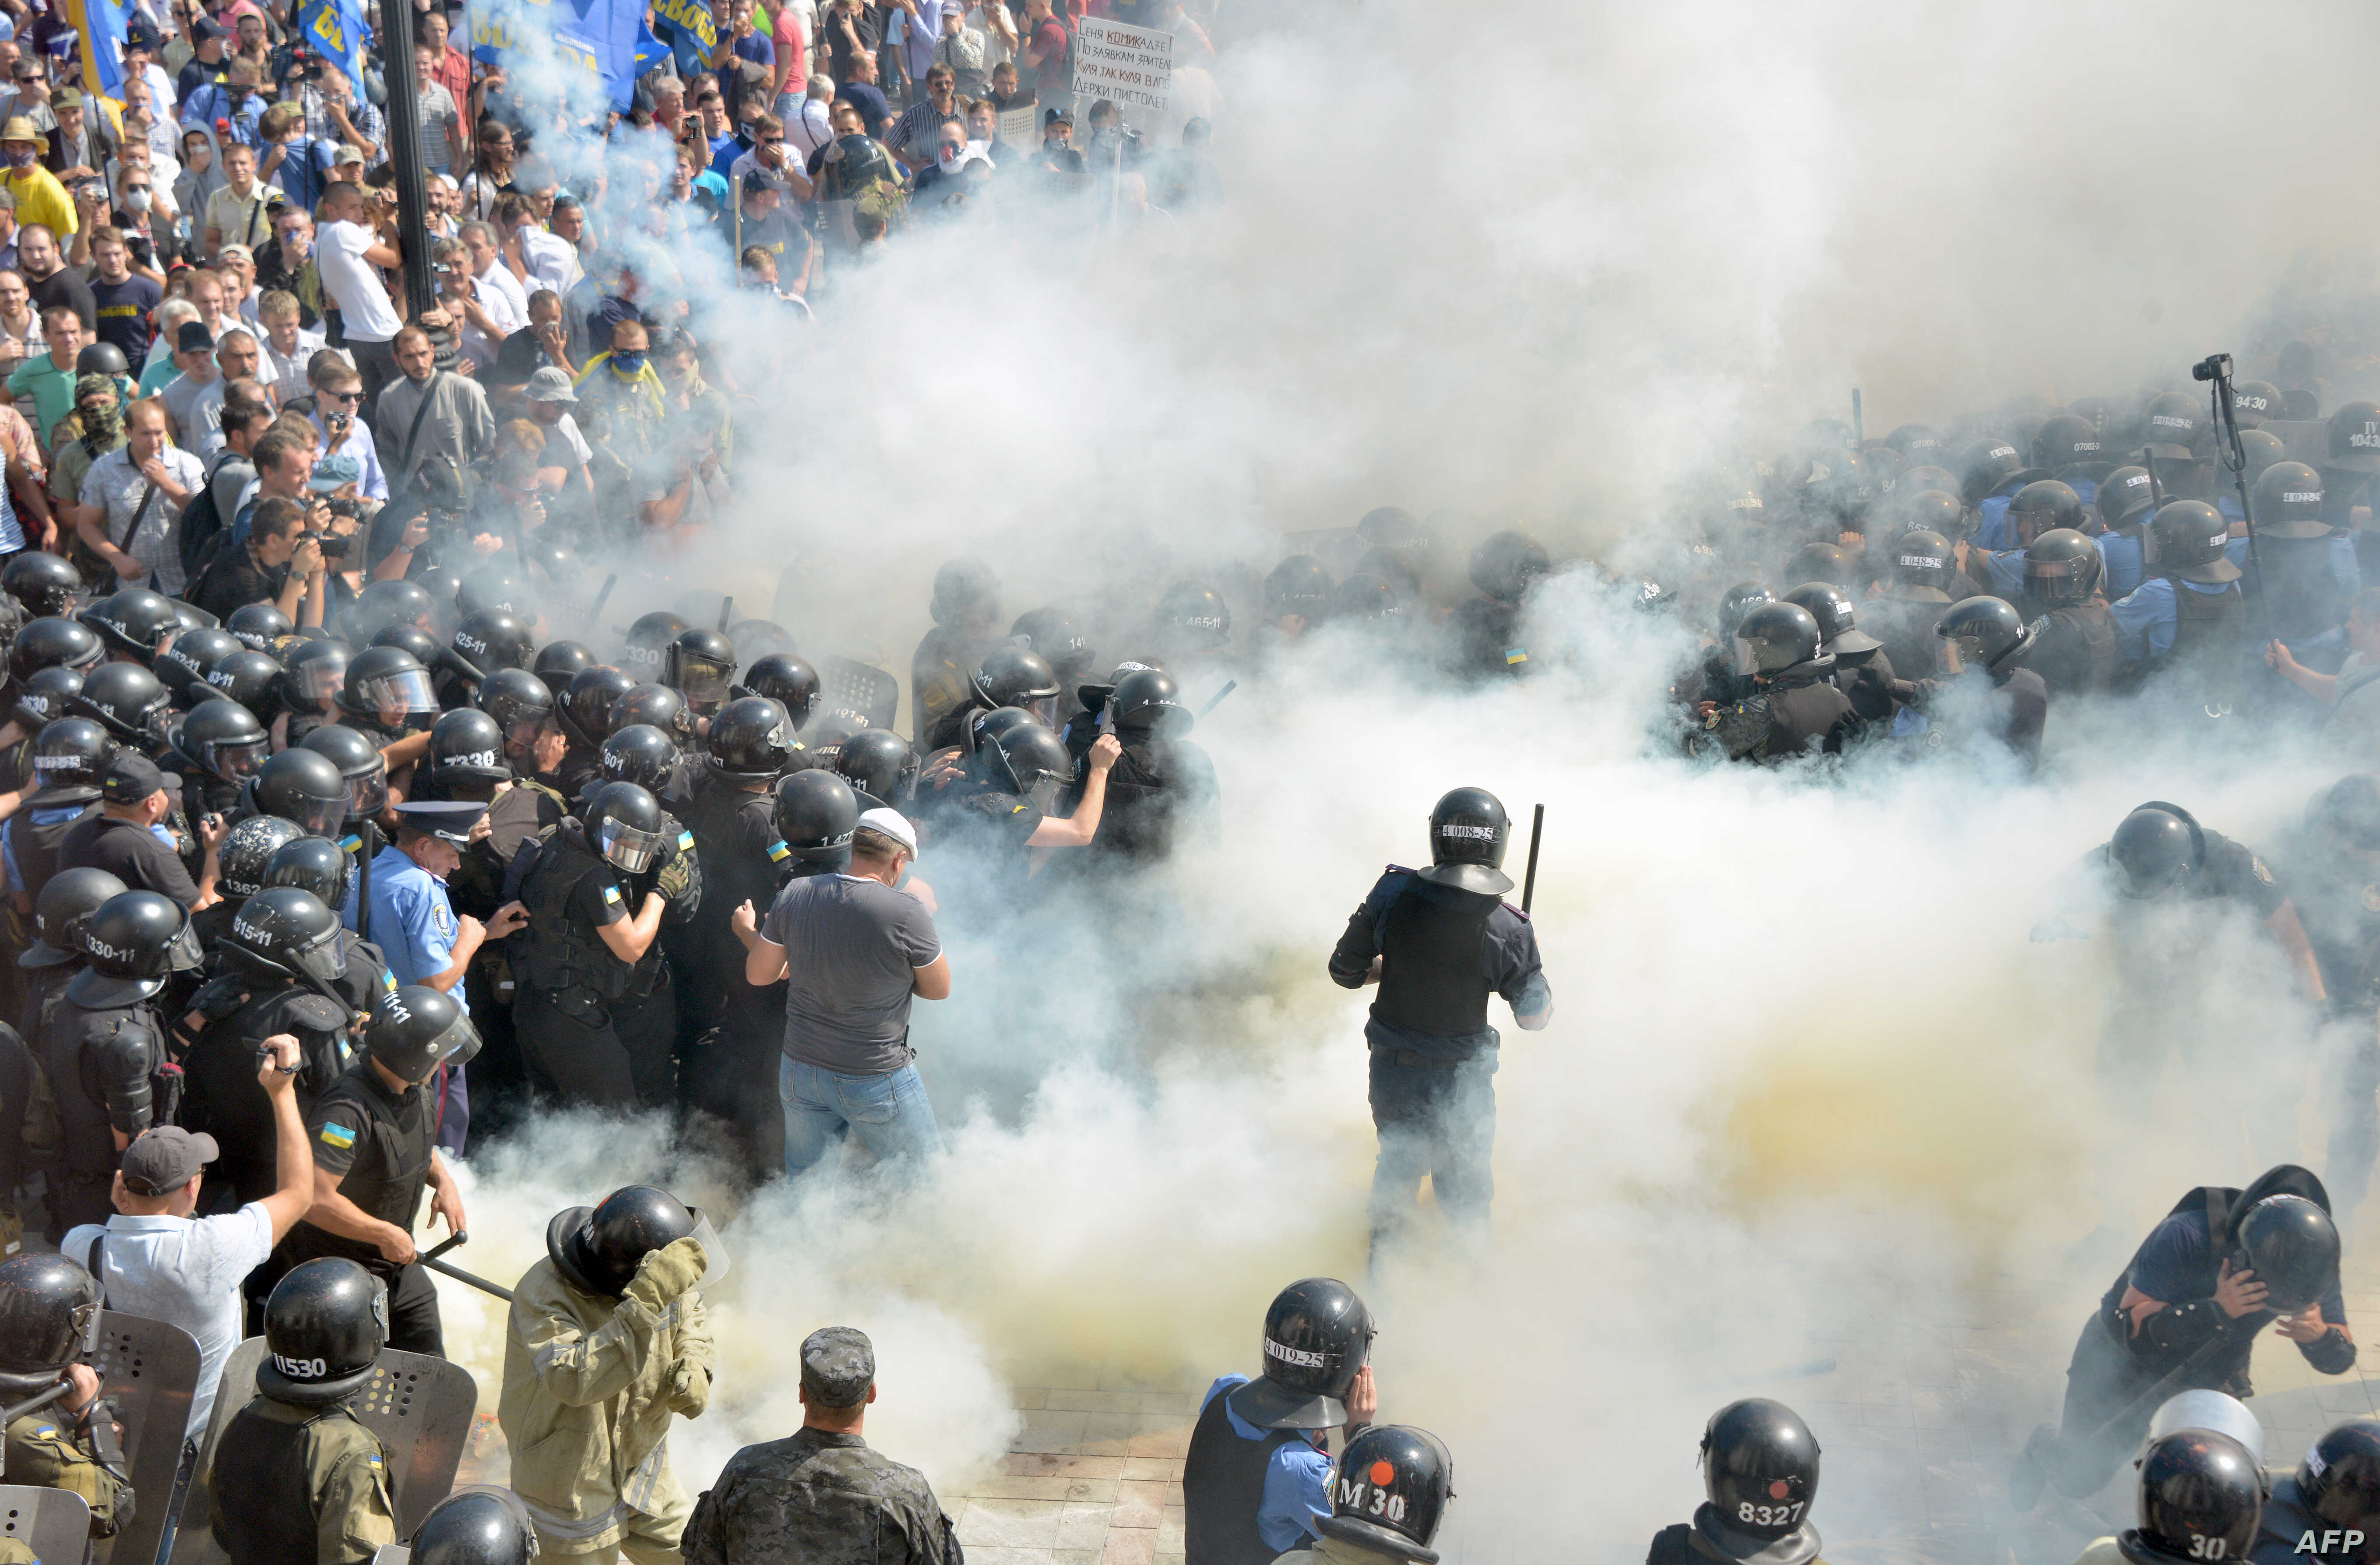 Smoke rises near the parliament building in Kiev as activists of radical Ukrainian parties, including the Ukrainian nationalist party Svoboda (Freedom), clash with police officers on August 31, 2015.